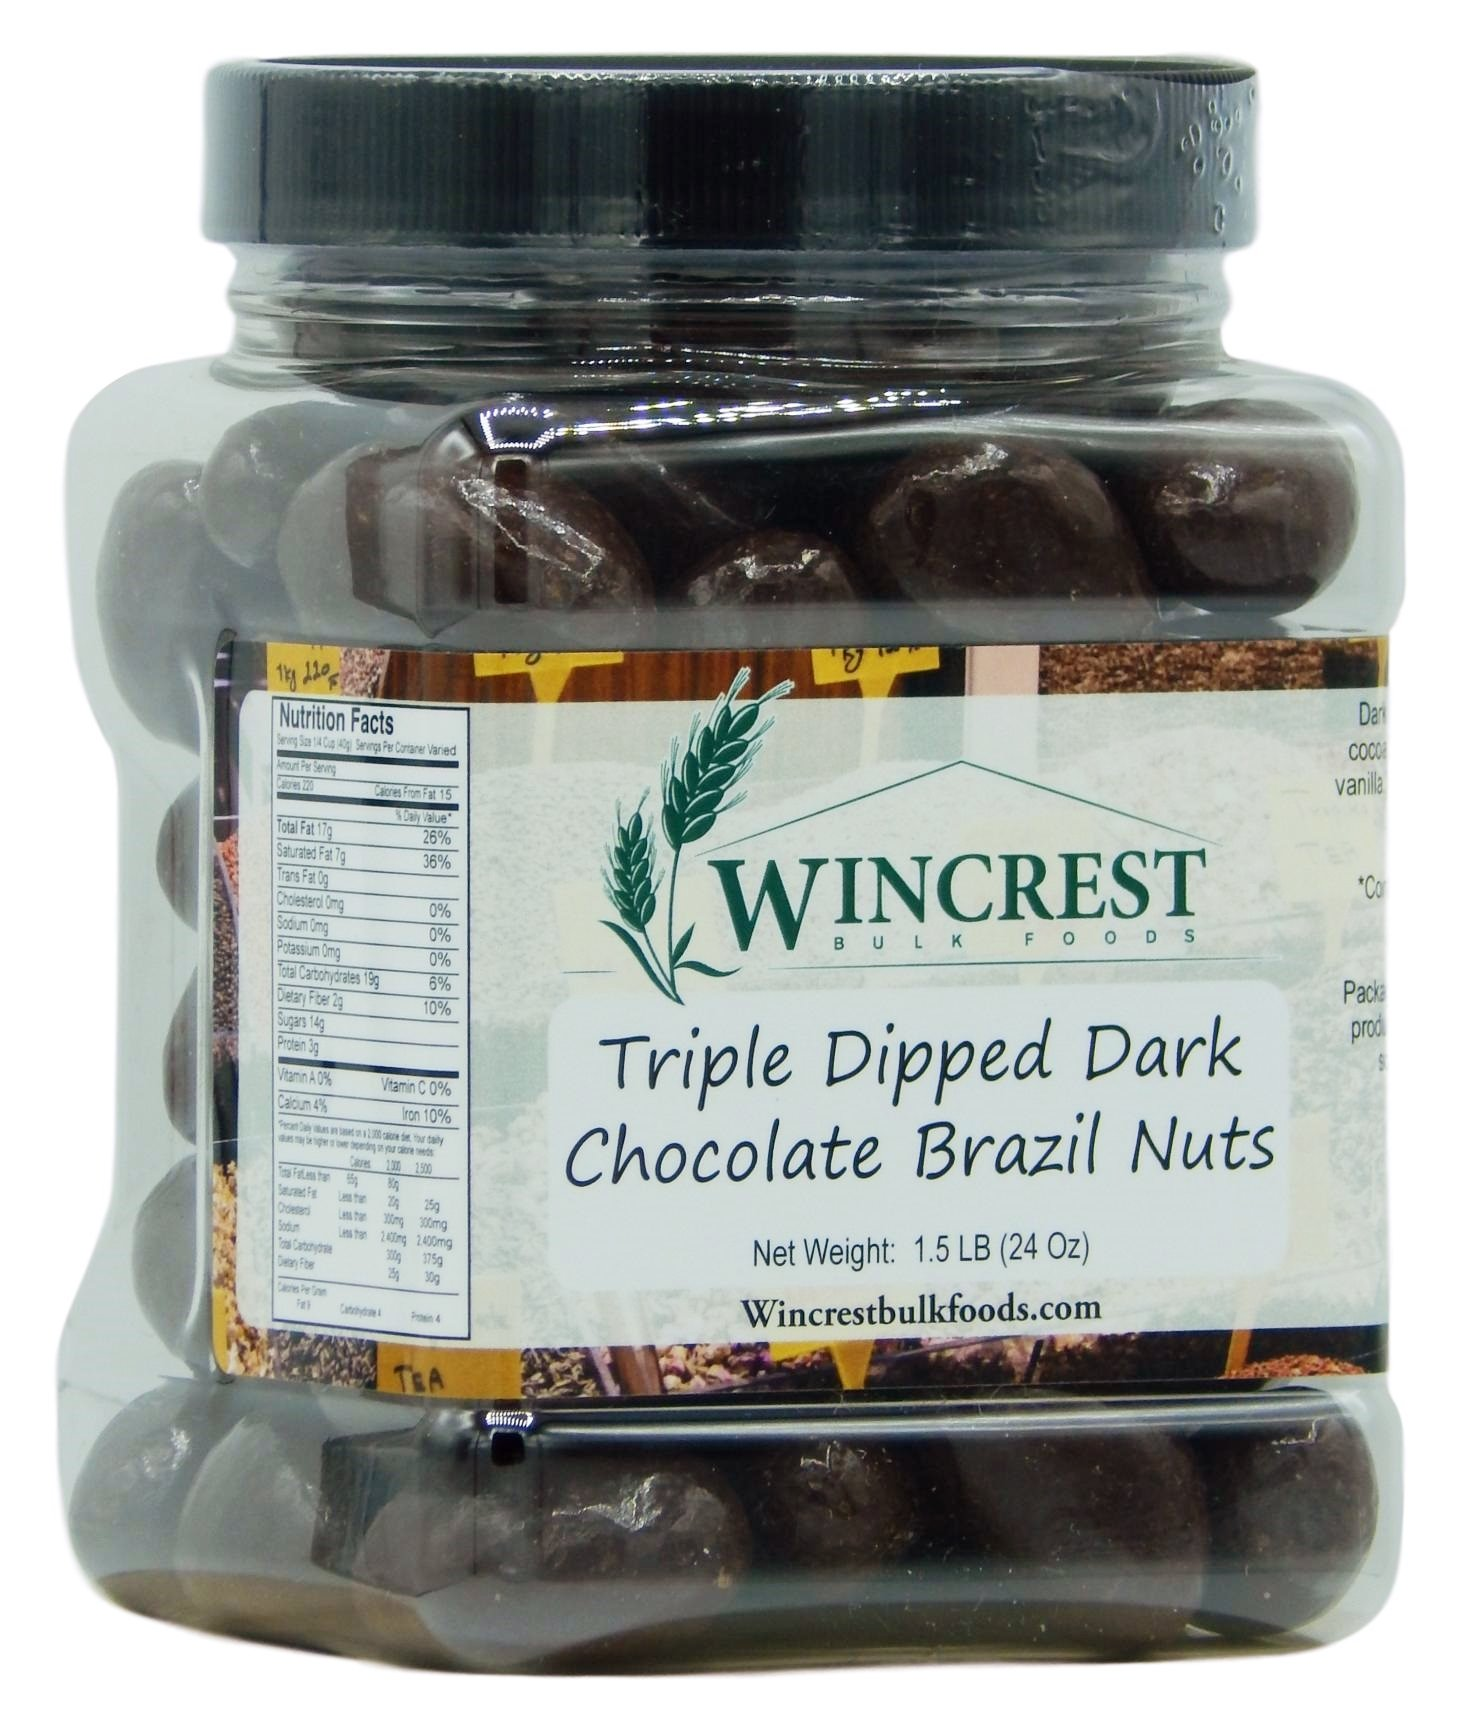 Triple Dipped Dark Chocolate Brazil Nuts - 1.5 Lb Tub by WinCrest Bulk Foods